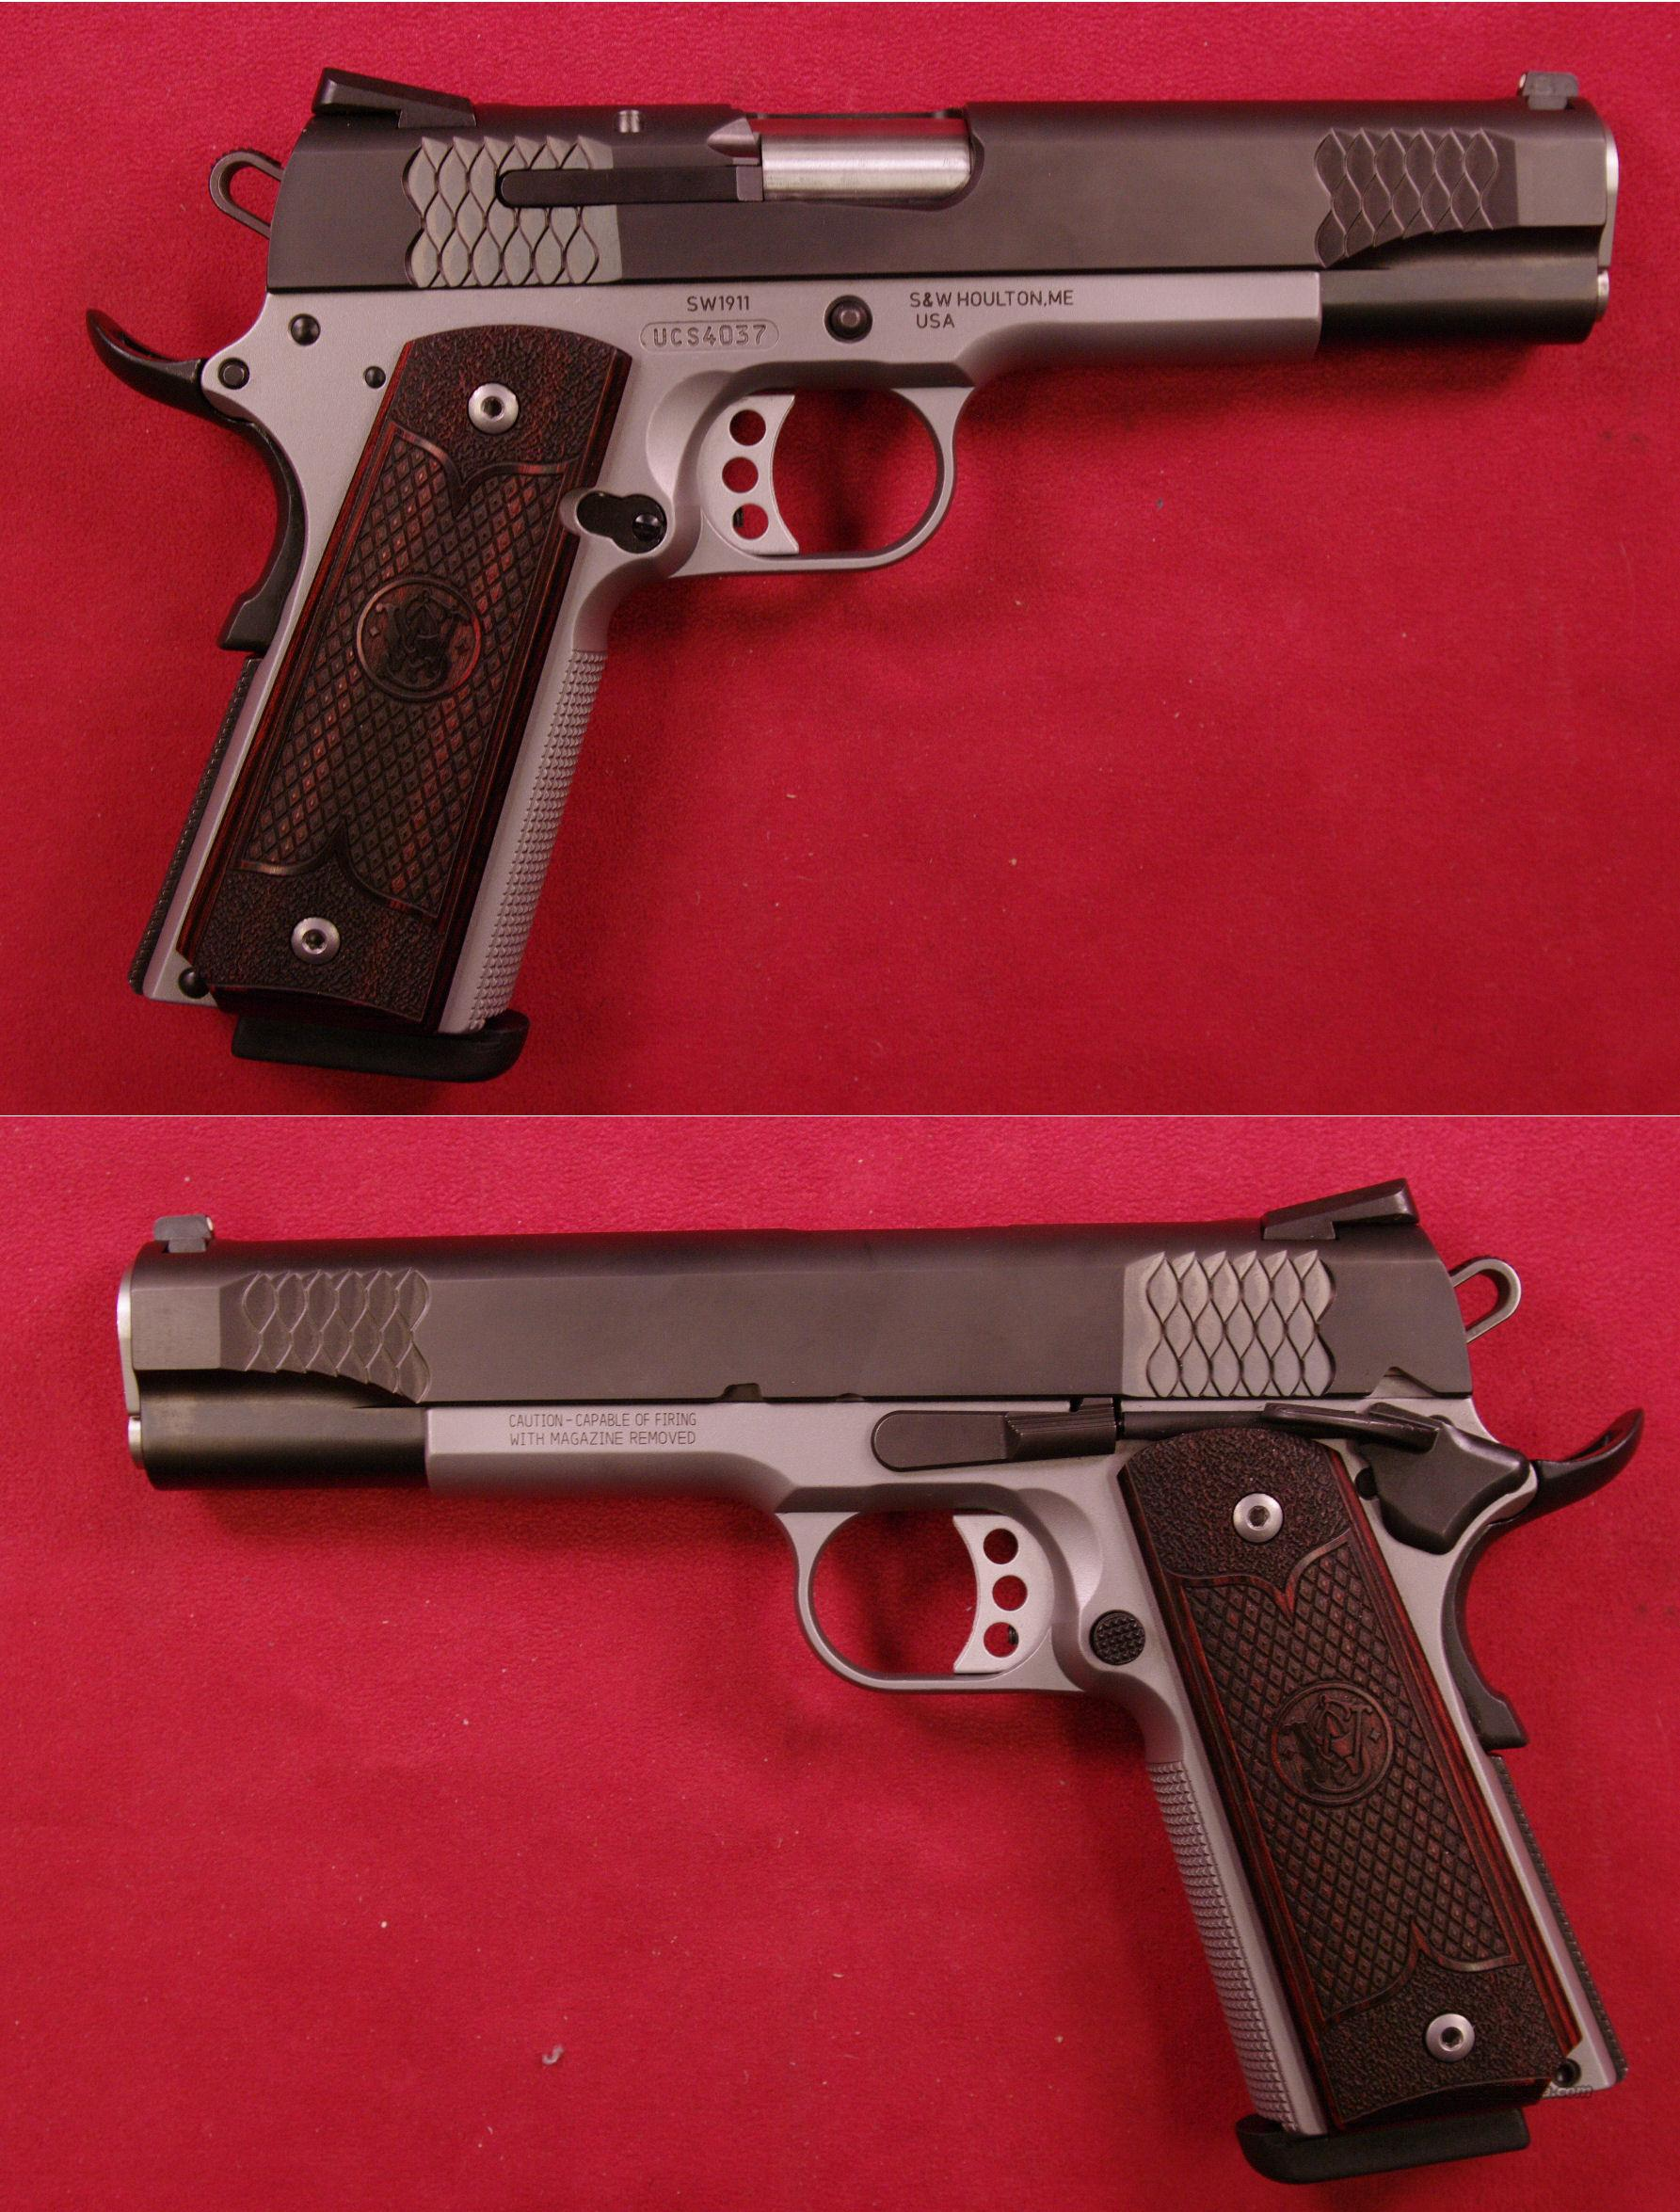 Smith & Wesson 1911 .45 ACP  Guns > Pistols > Smith & Wesson Pistols - Autos > Steel Frame